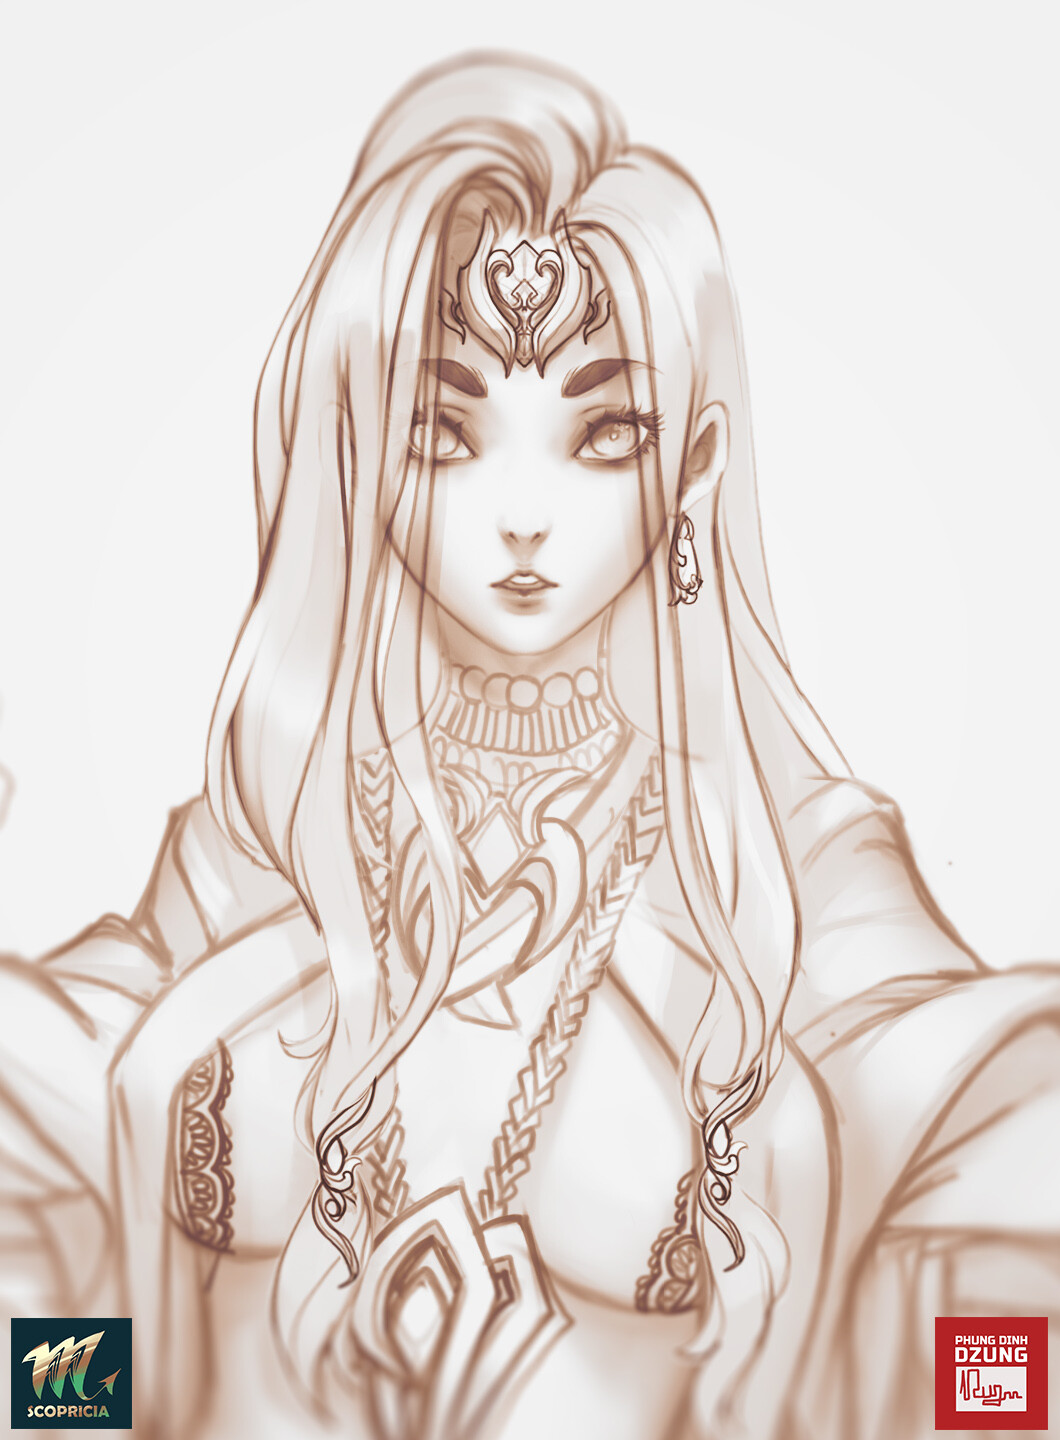 Dzung phung dinh scopricia conceptlineart support1